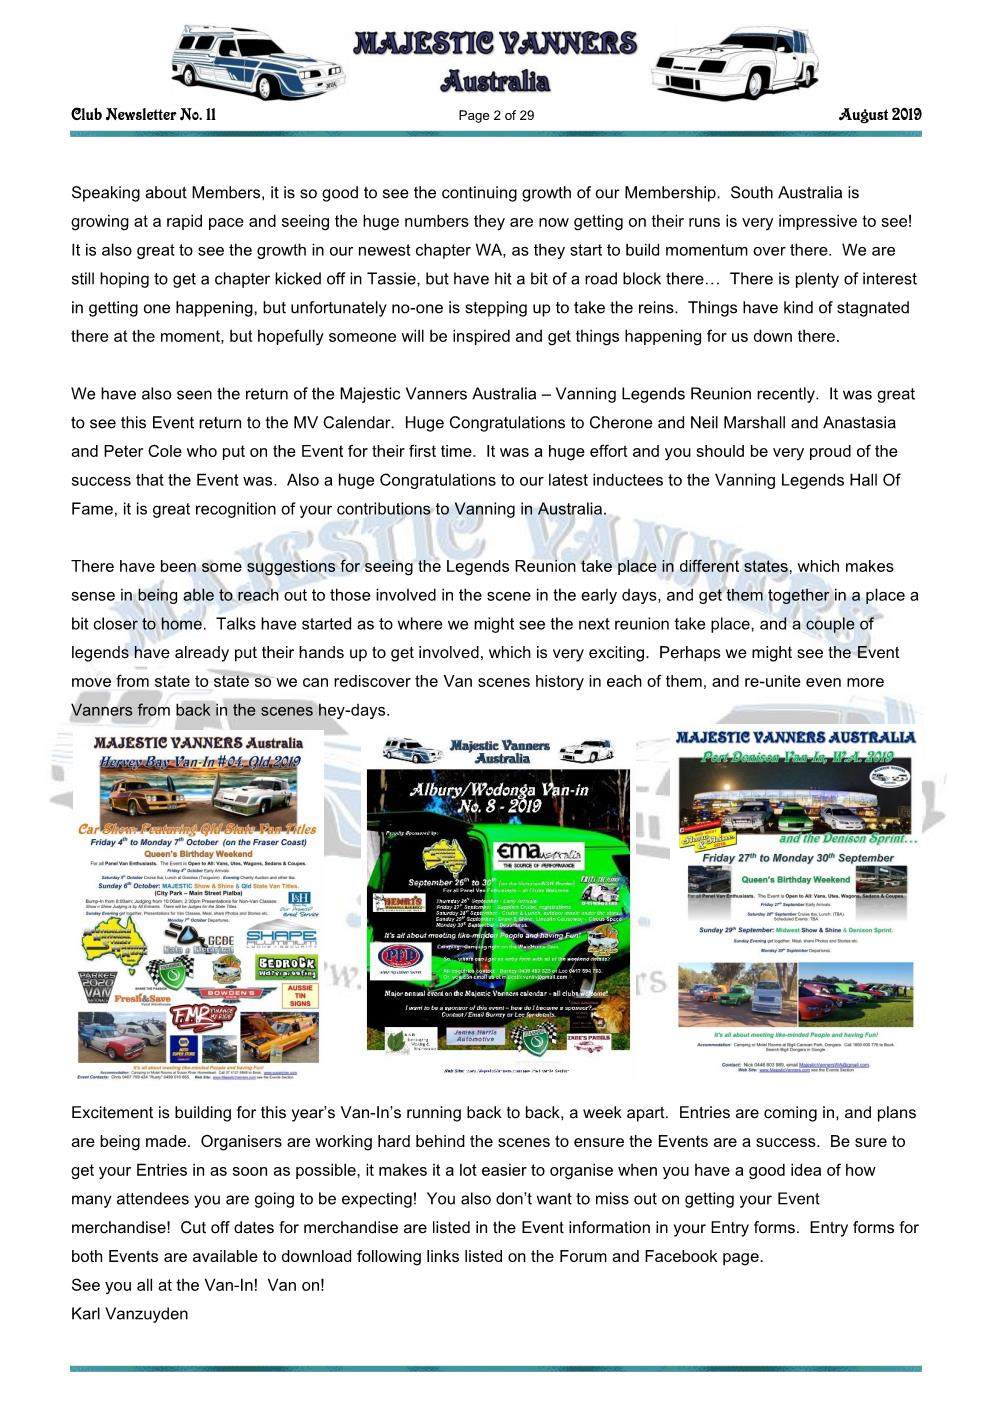 MAJESTIC VANNERS Newsletter Issue No: 11 August 2019 Mv_new40